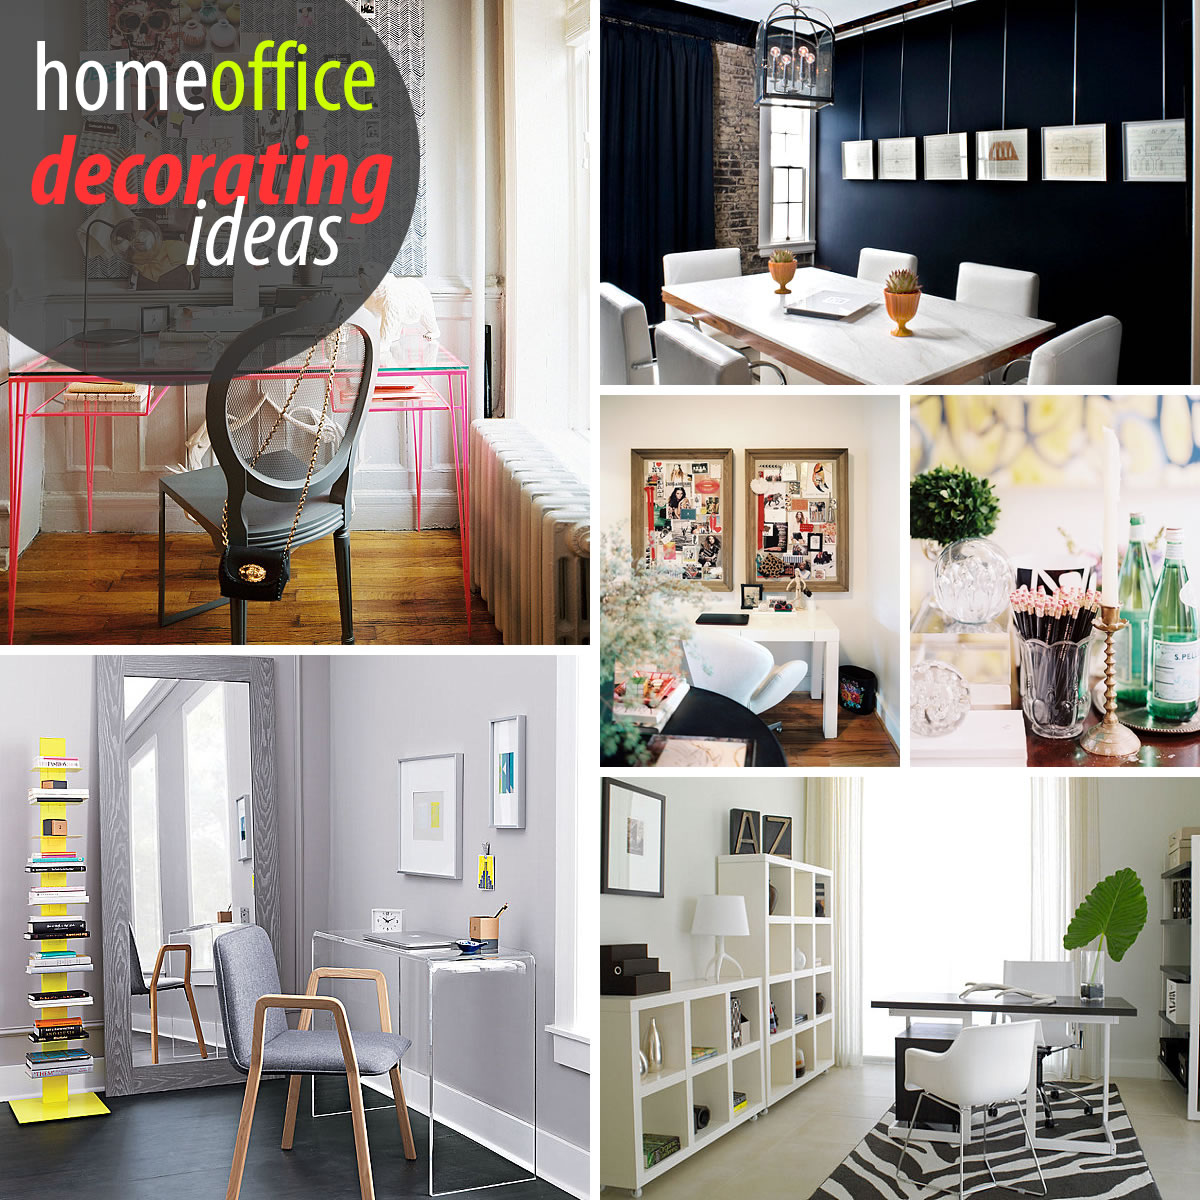 Creative home office decorating ideas for House and home decorating ideas